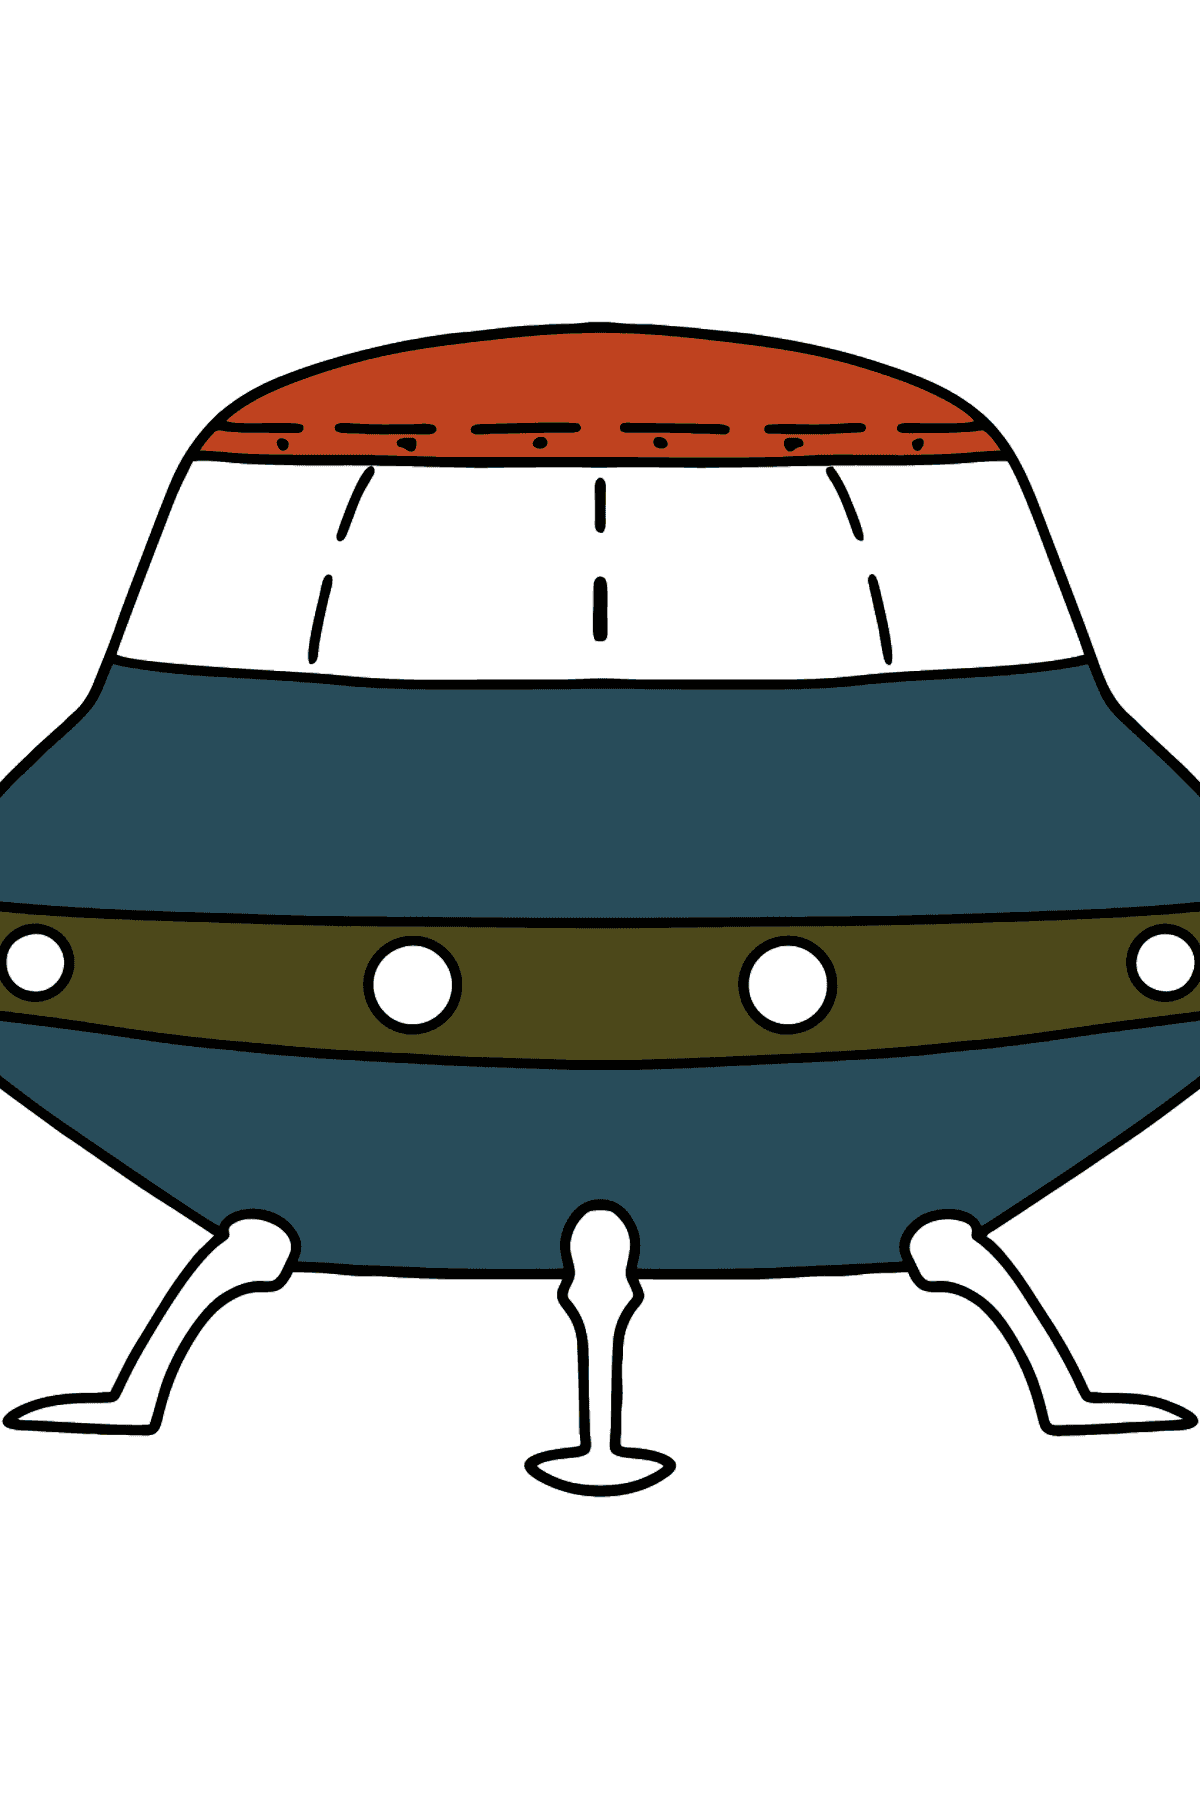 Ufo coloring page - Coloring Pages for Kids